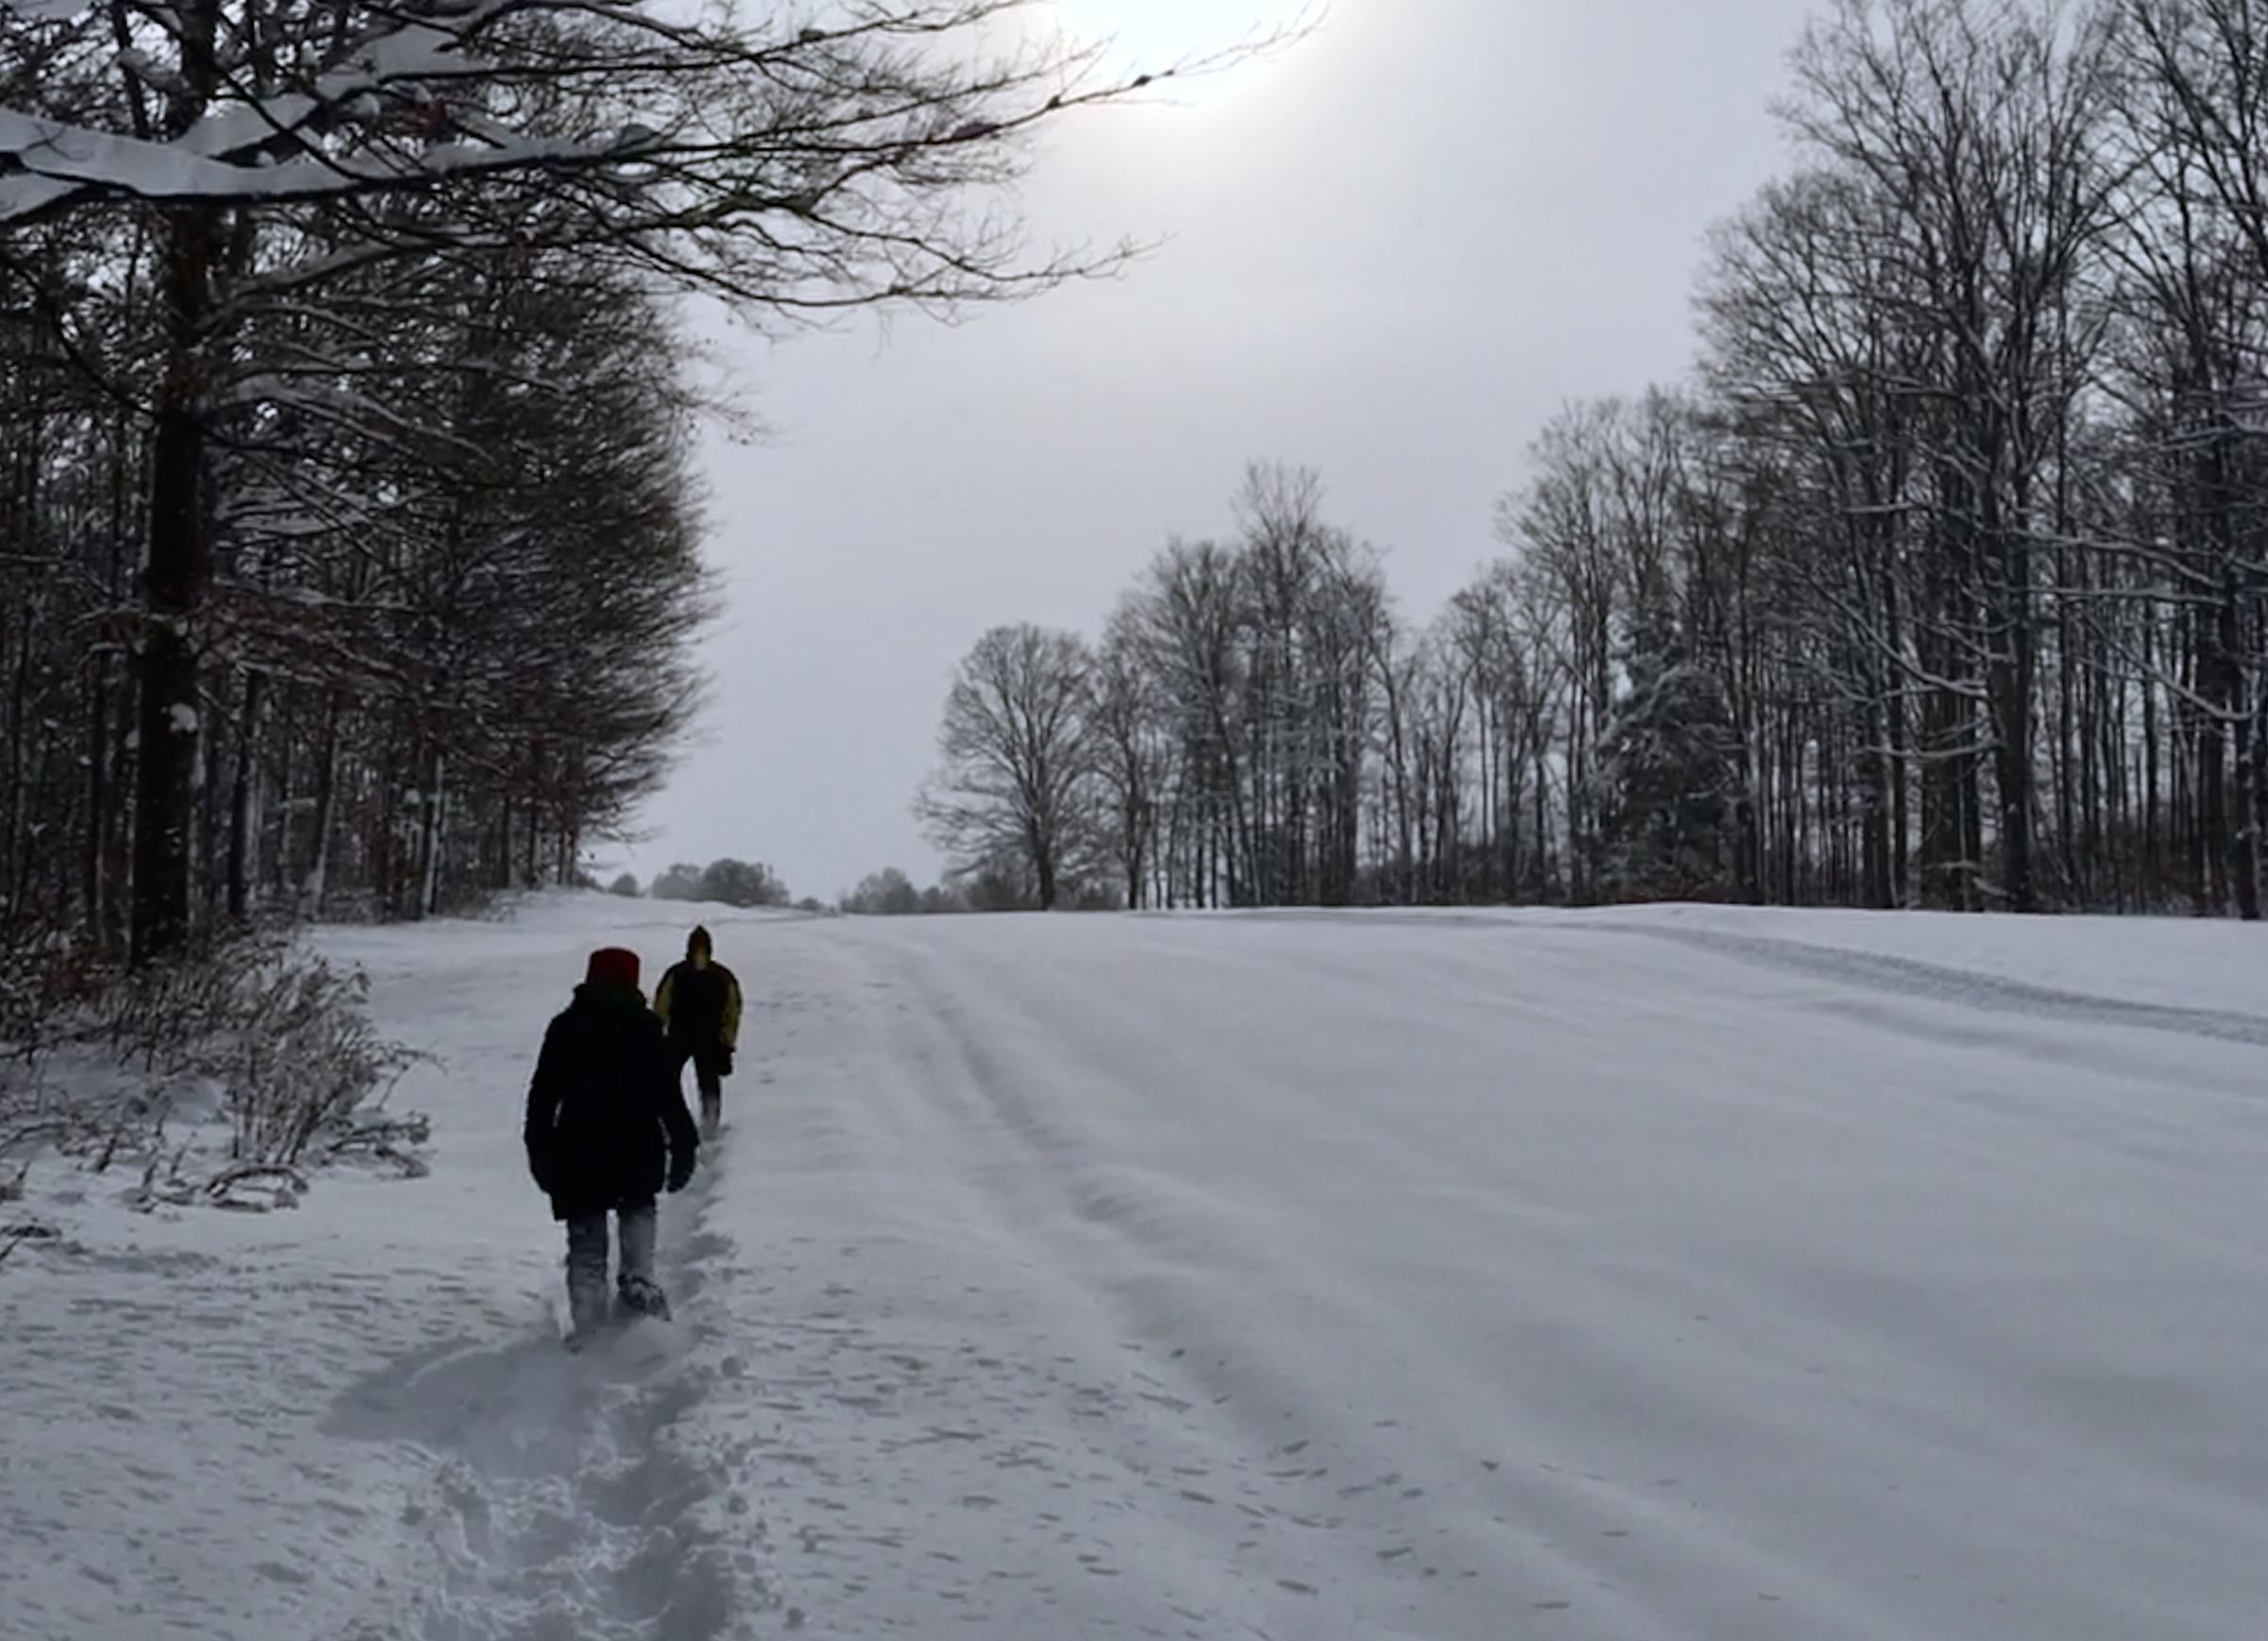 Massive Snowfall In Northern Michigan Meant Braving The Frigid Temperatures To Do A Bit Of Snowshoeing On New Years Eve